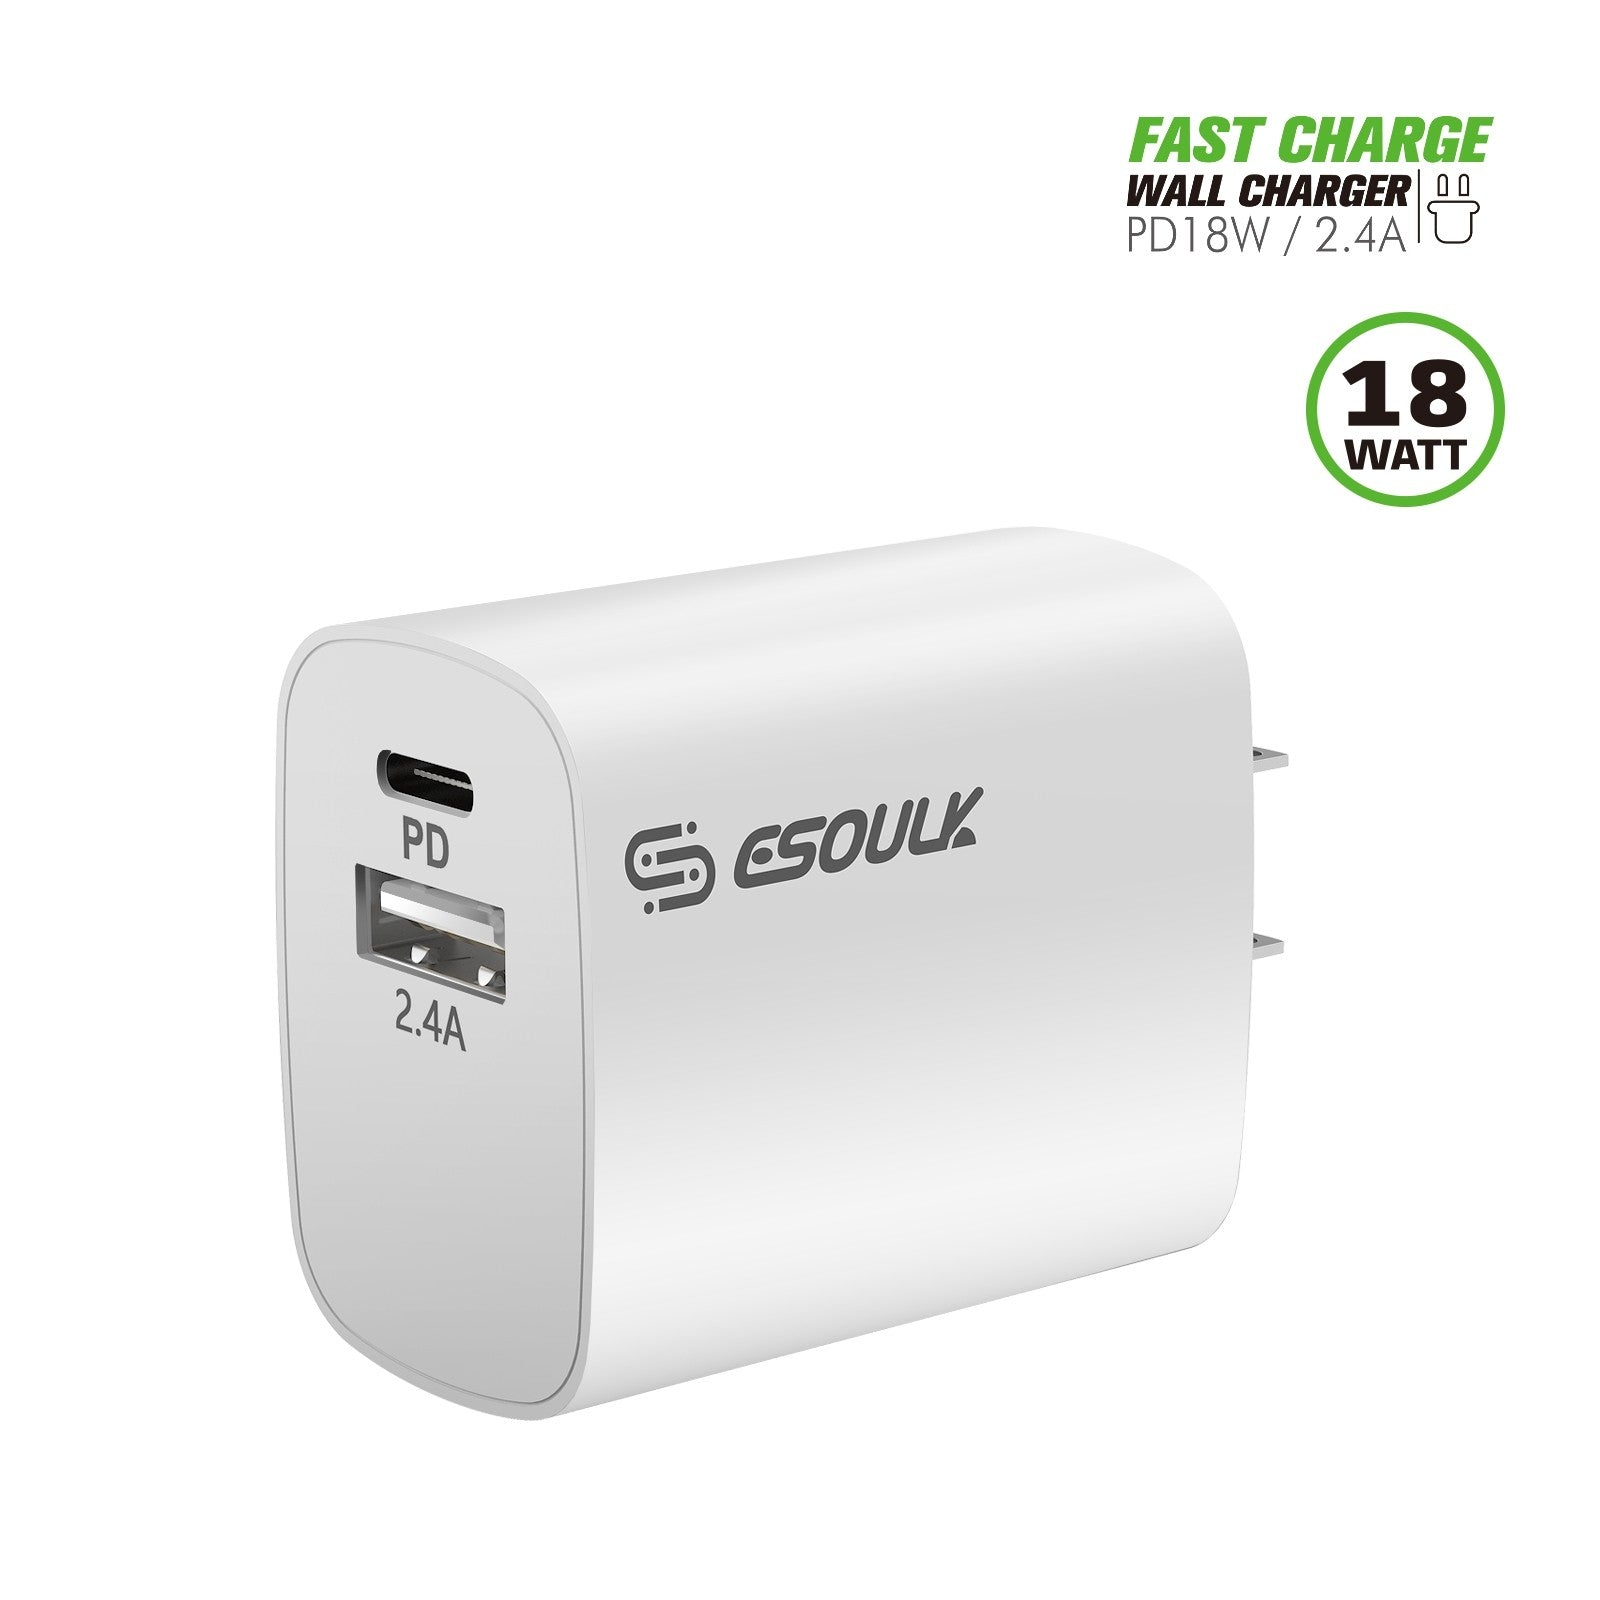 Fast Charging Wall Charger | Charge Devices In Half The TIme!